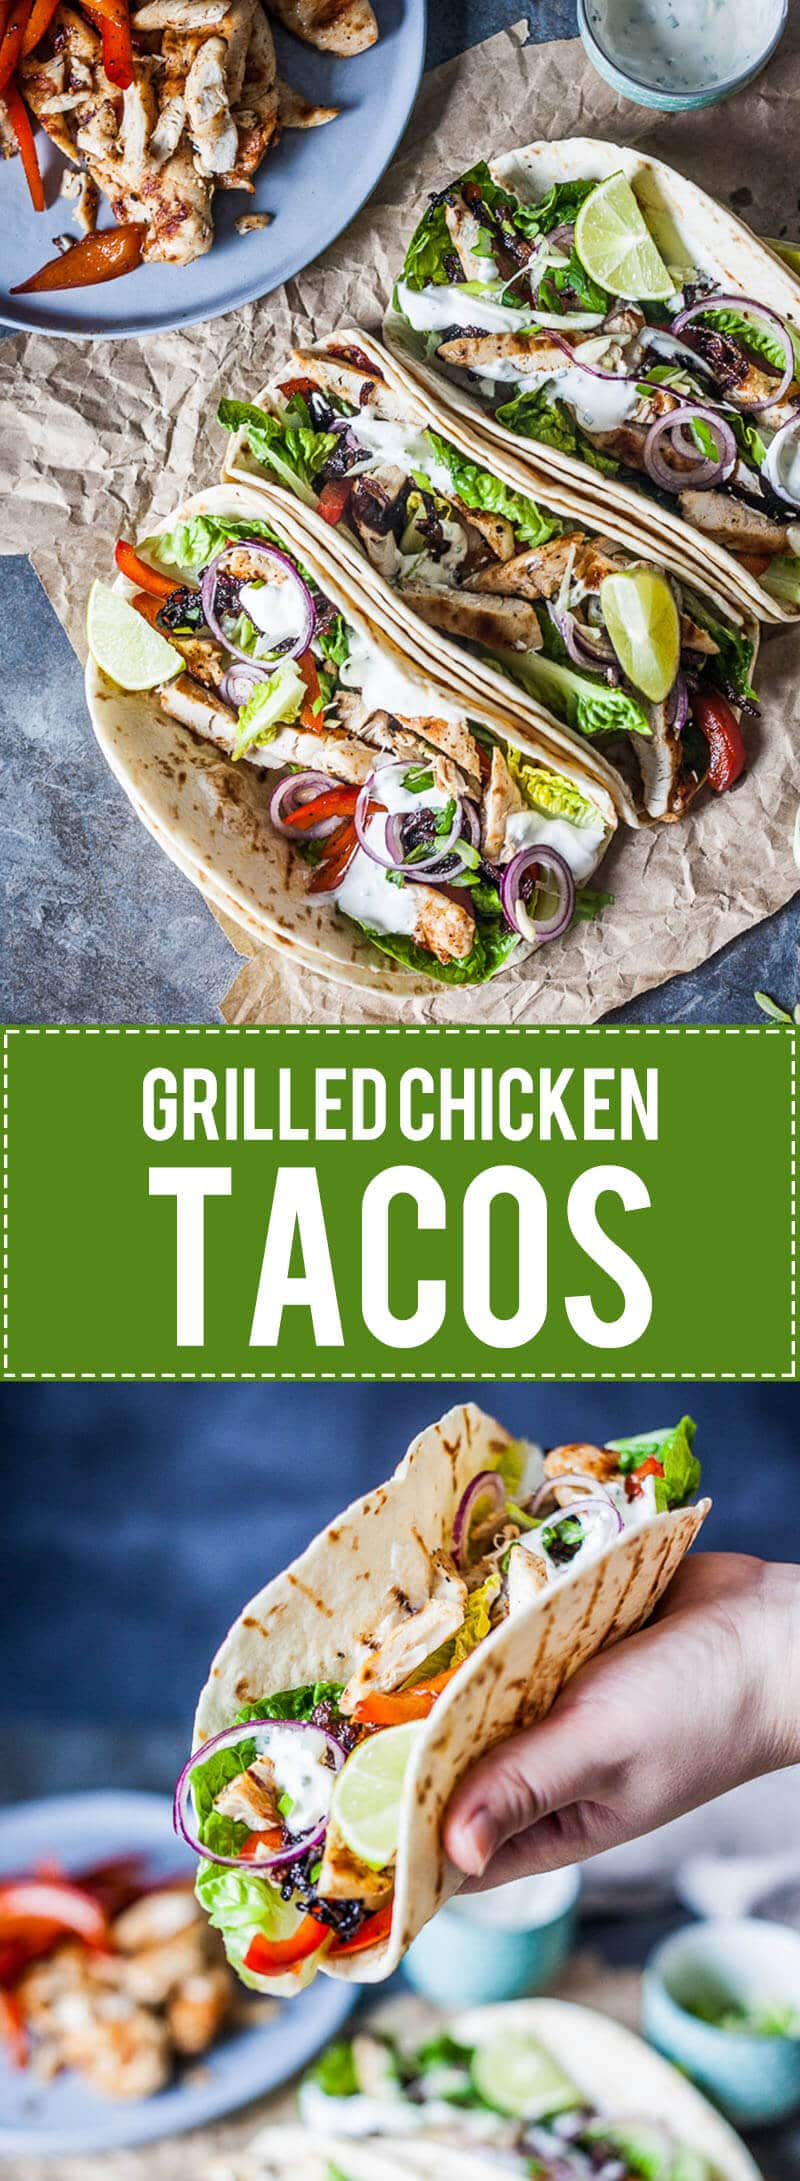 Grilled Chicken Tacos are a healthy and easy meal for every day. Also an excellent to-go meal for the office and a real crowd-pleaser! | www.vibrantplate.com